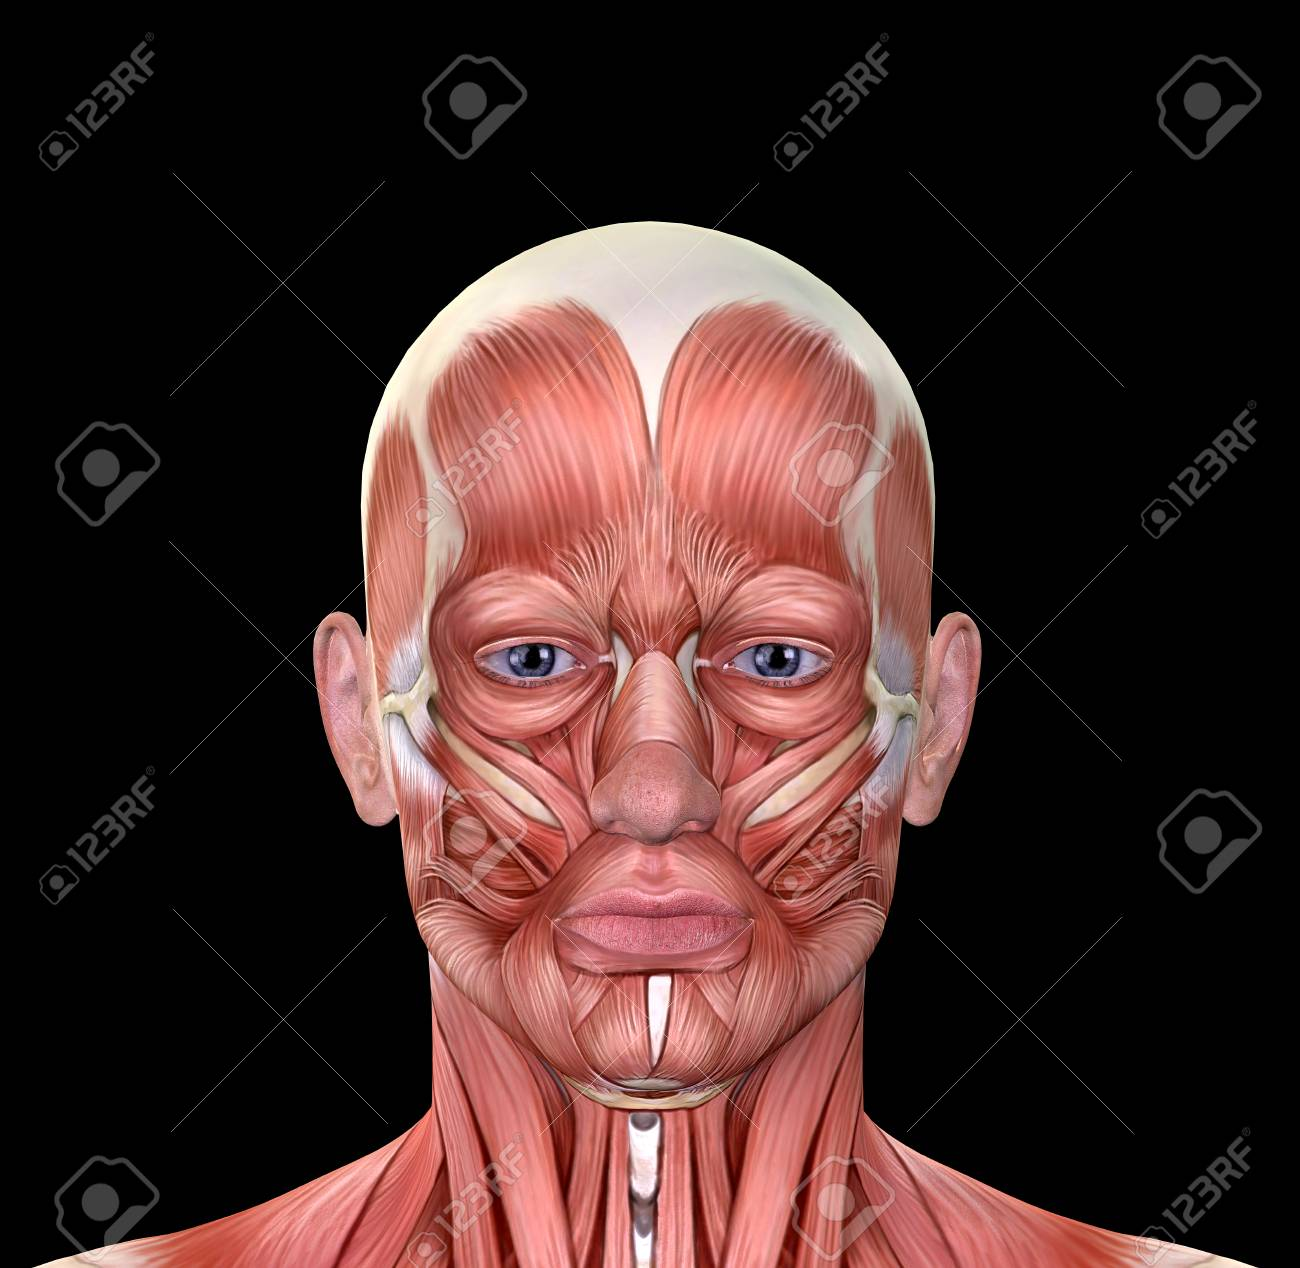 Male Face Muscles Anatomy Isolated On Black Stock Photo, Picture And ...